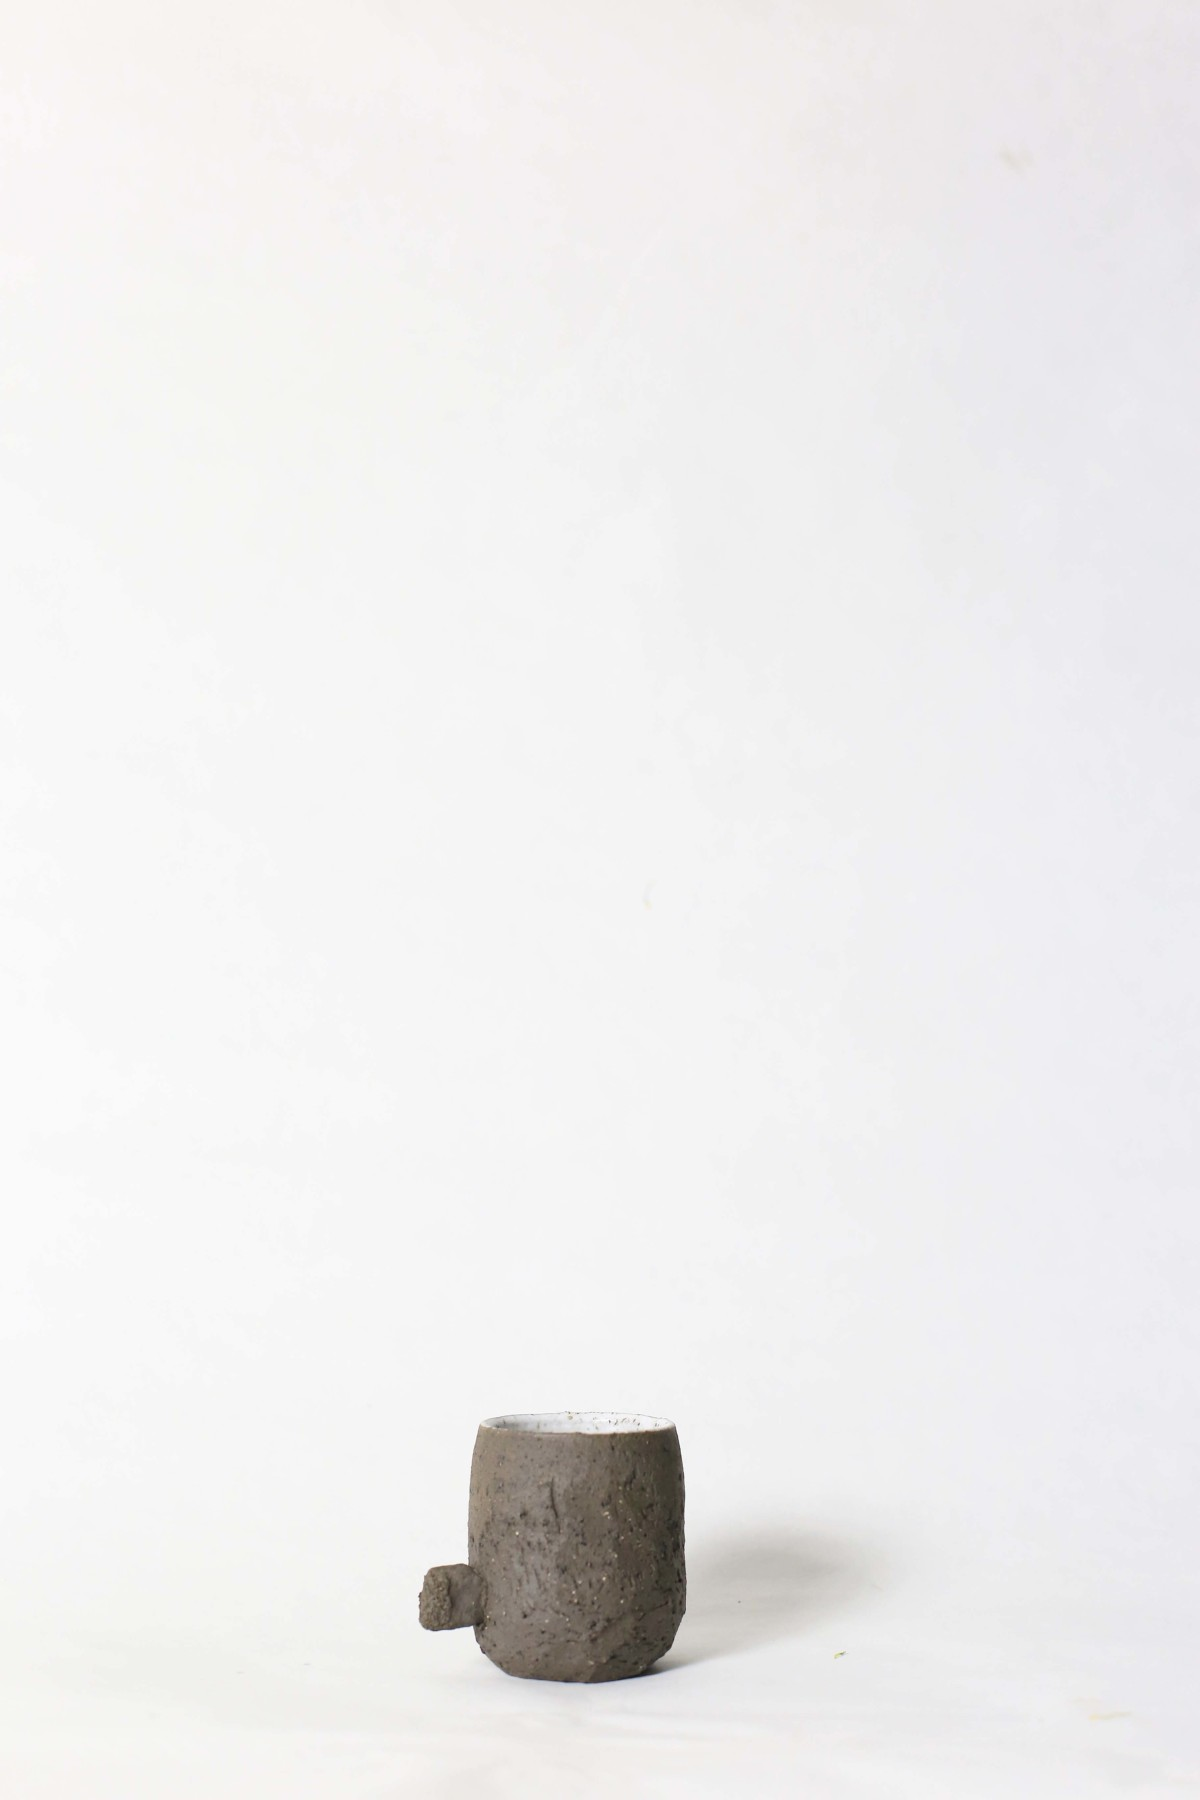 Terra nigra clay cup with a knot below on a white background